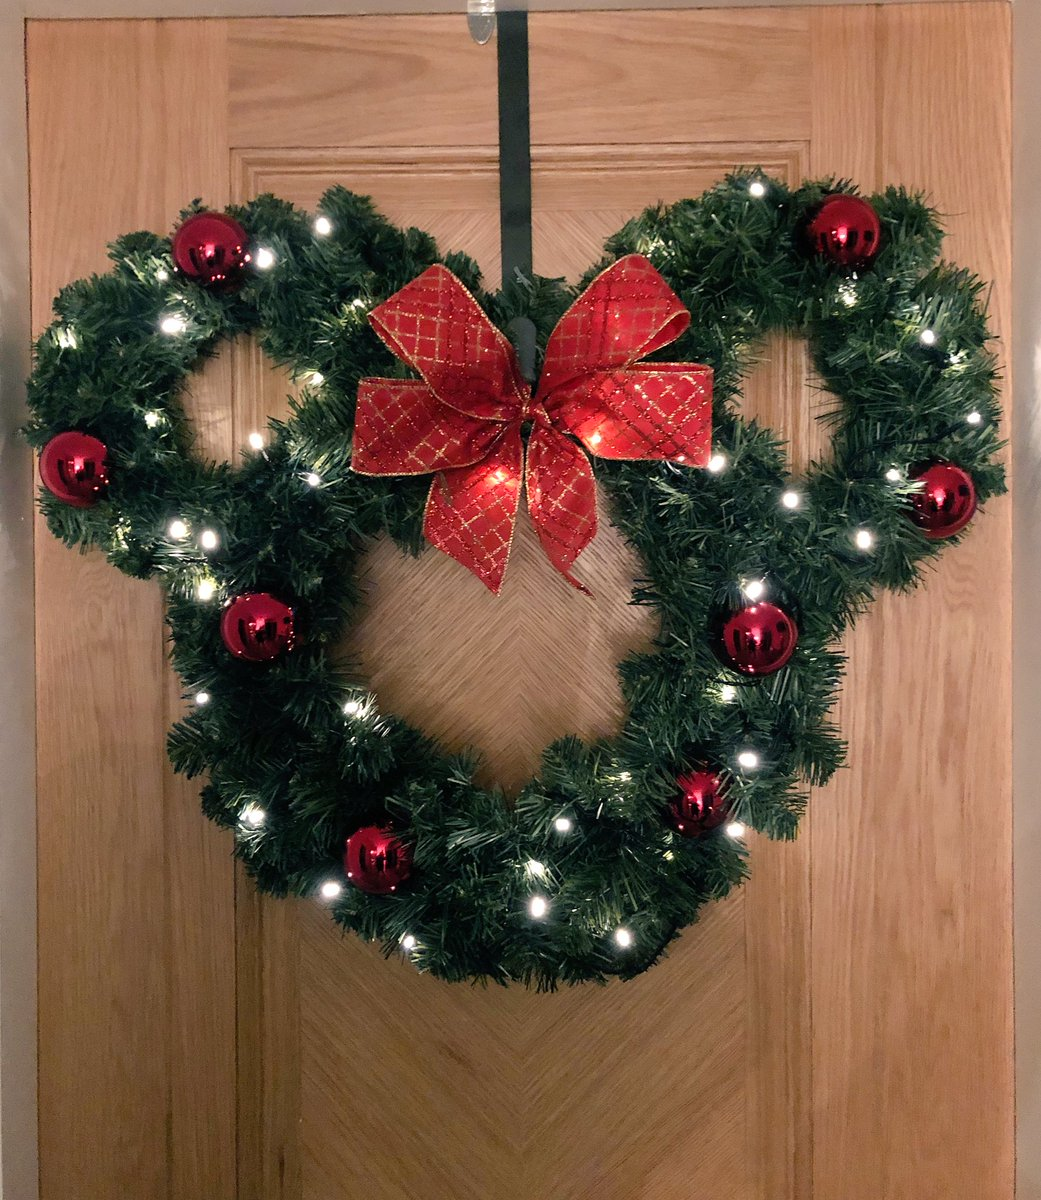 The Blooming Bud On Twitter Artificial Minnie Mouse Door Wreath Lovedisney Minniemouse Mickeymouse Wreath Christmas Xmas Flower Love Baubles Disney Florida Thebloomingbud Wardle Rochdale Https T Co Cg9jz9nl9a